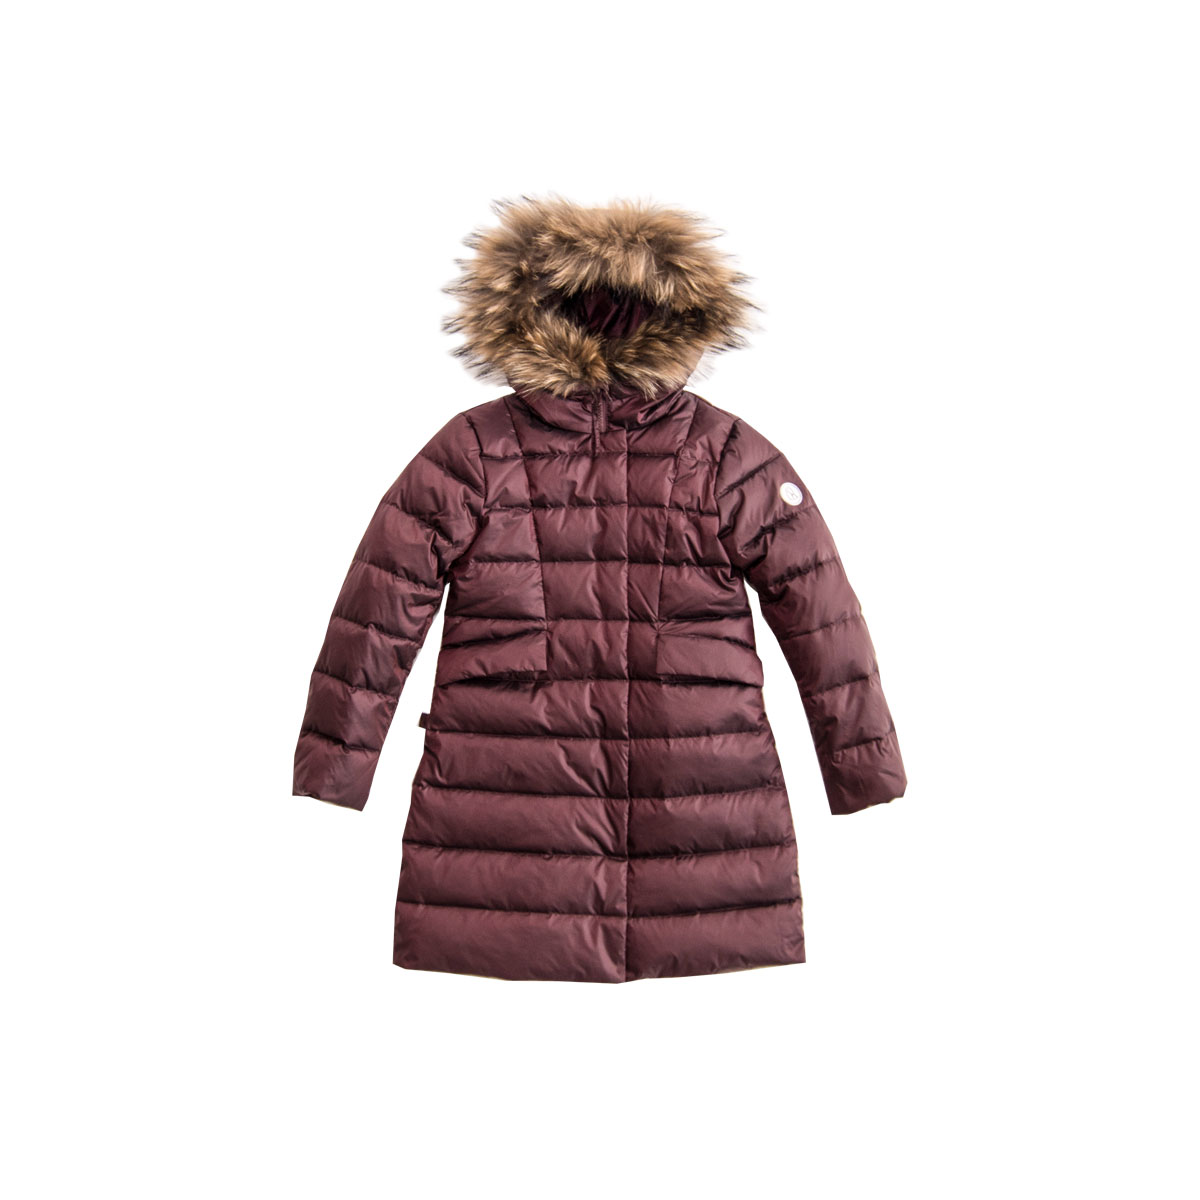 1a0c64b00dfc Pengu-KIDS-winter-down-coat-kata-dark-red-a-front